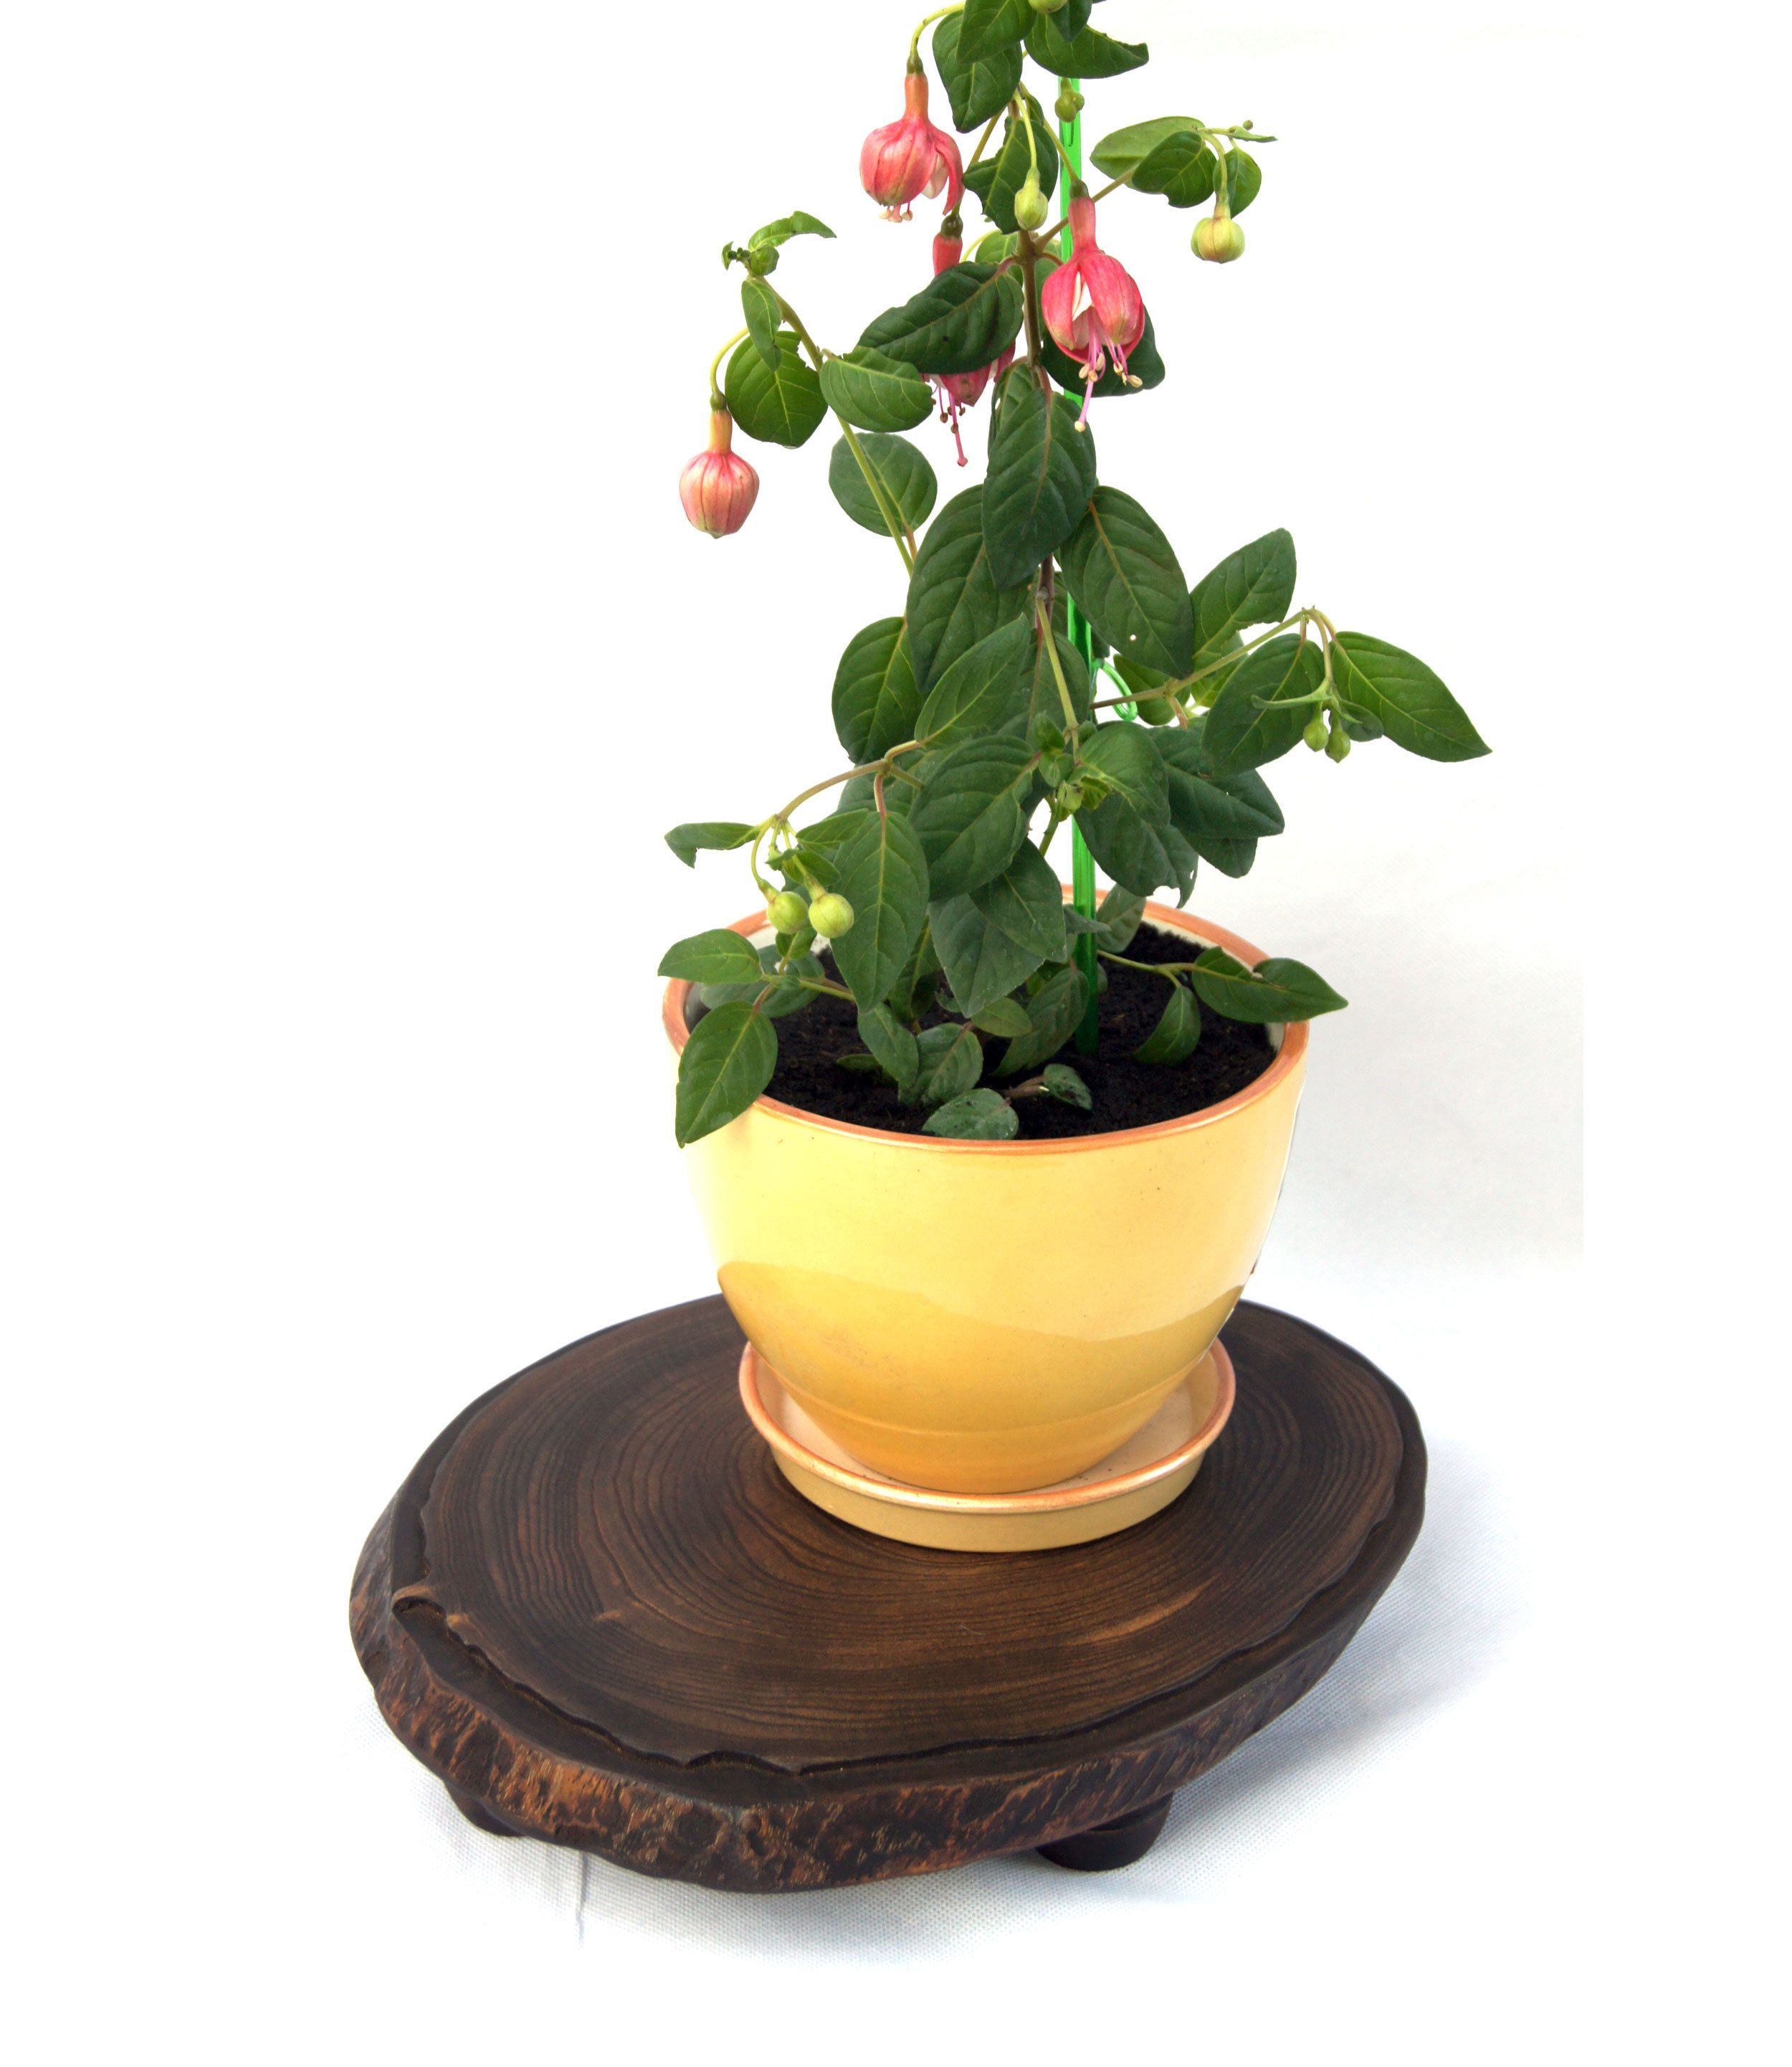 Small Live Edge Natural Wood Slab Plant Stand Indoor Rustic Wooden Planter Stand Base Flower Pot Holder Tree Stump Board Gardening Gift Wife